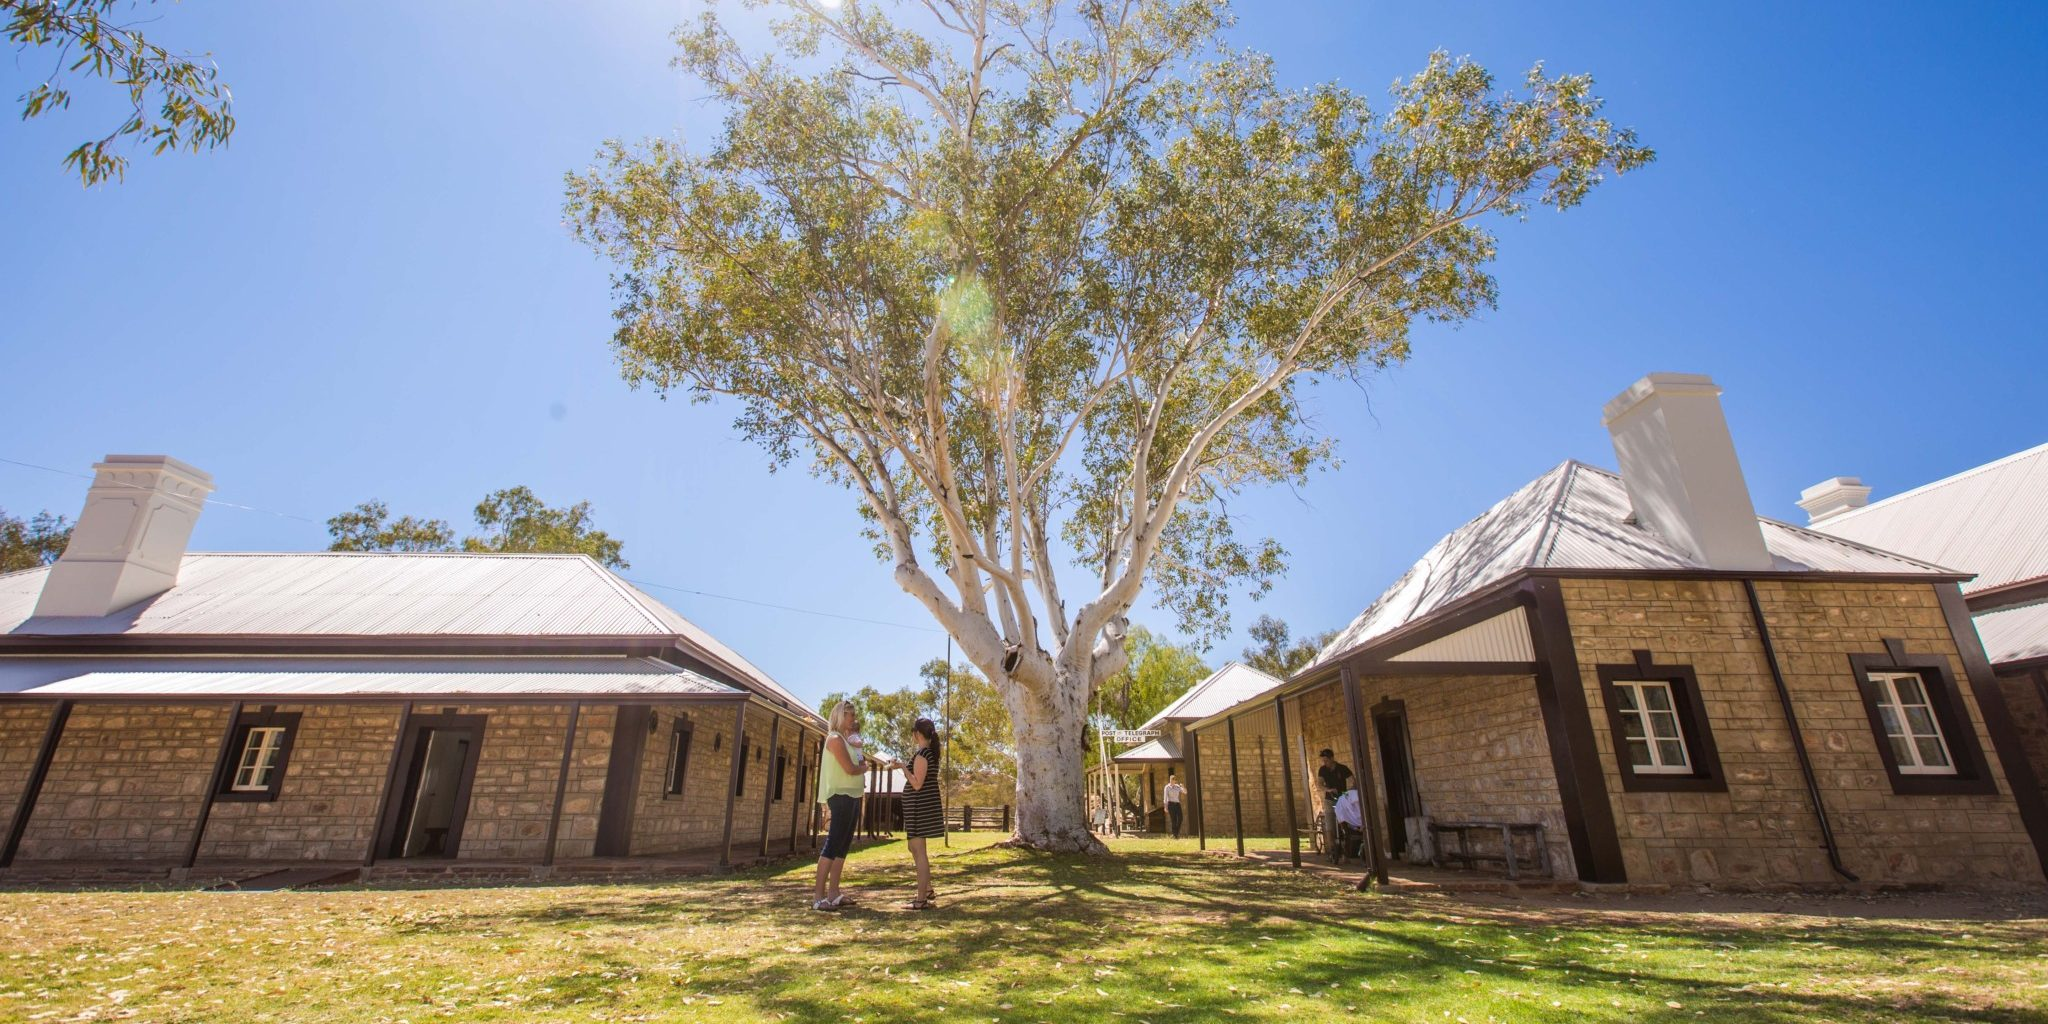 The beautiful bush grounds of the Alice Springs Telegraph Station Historical Precinct